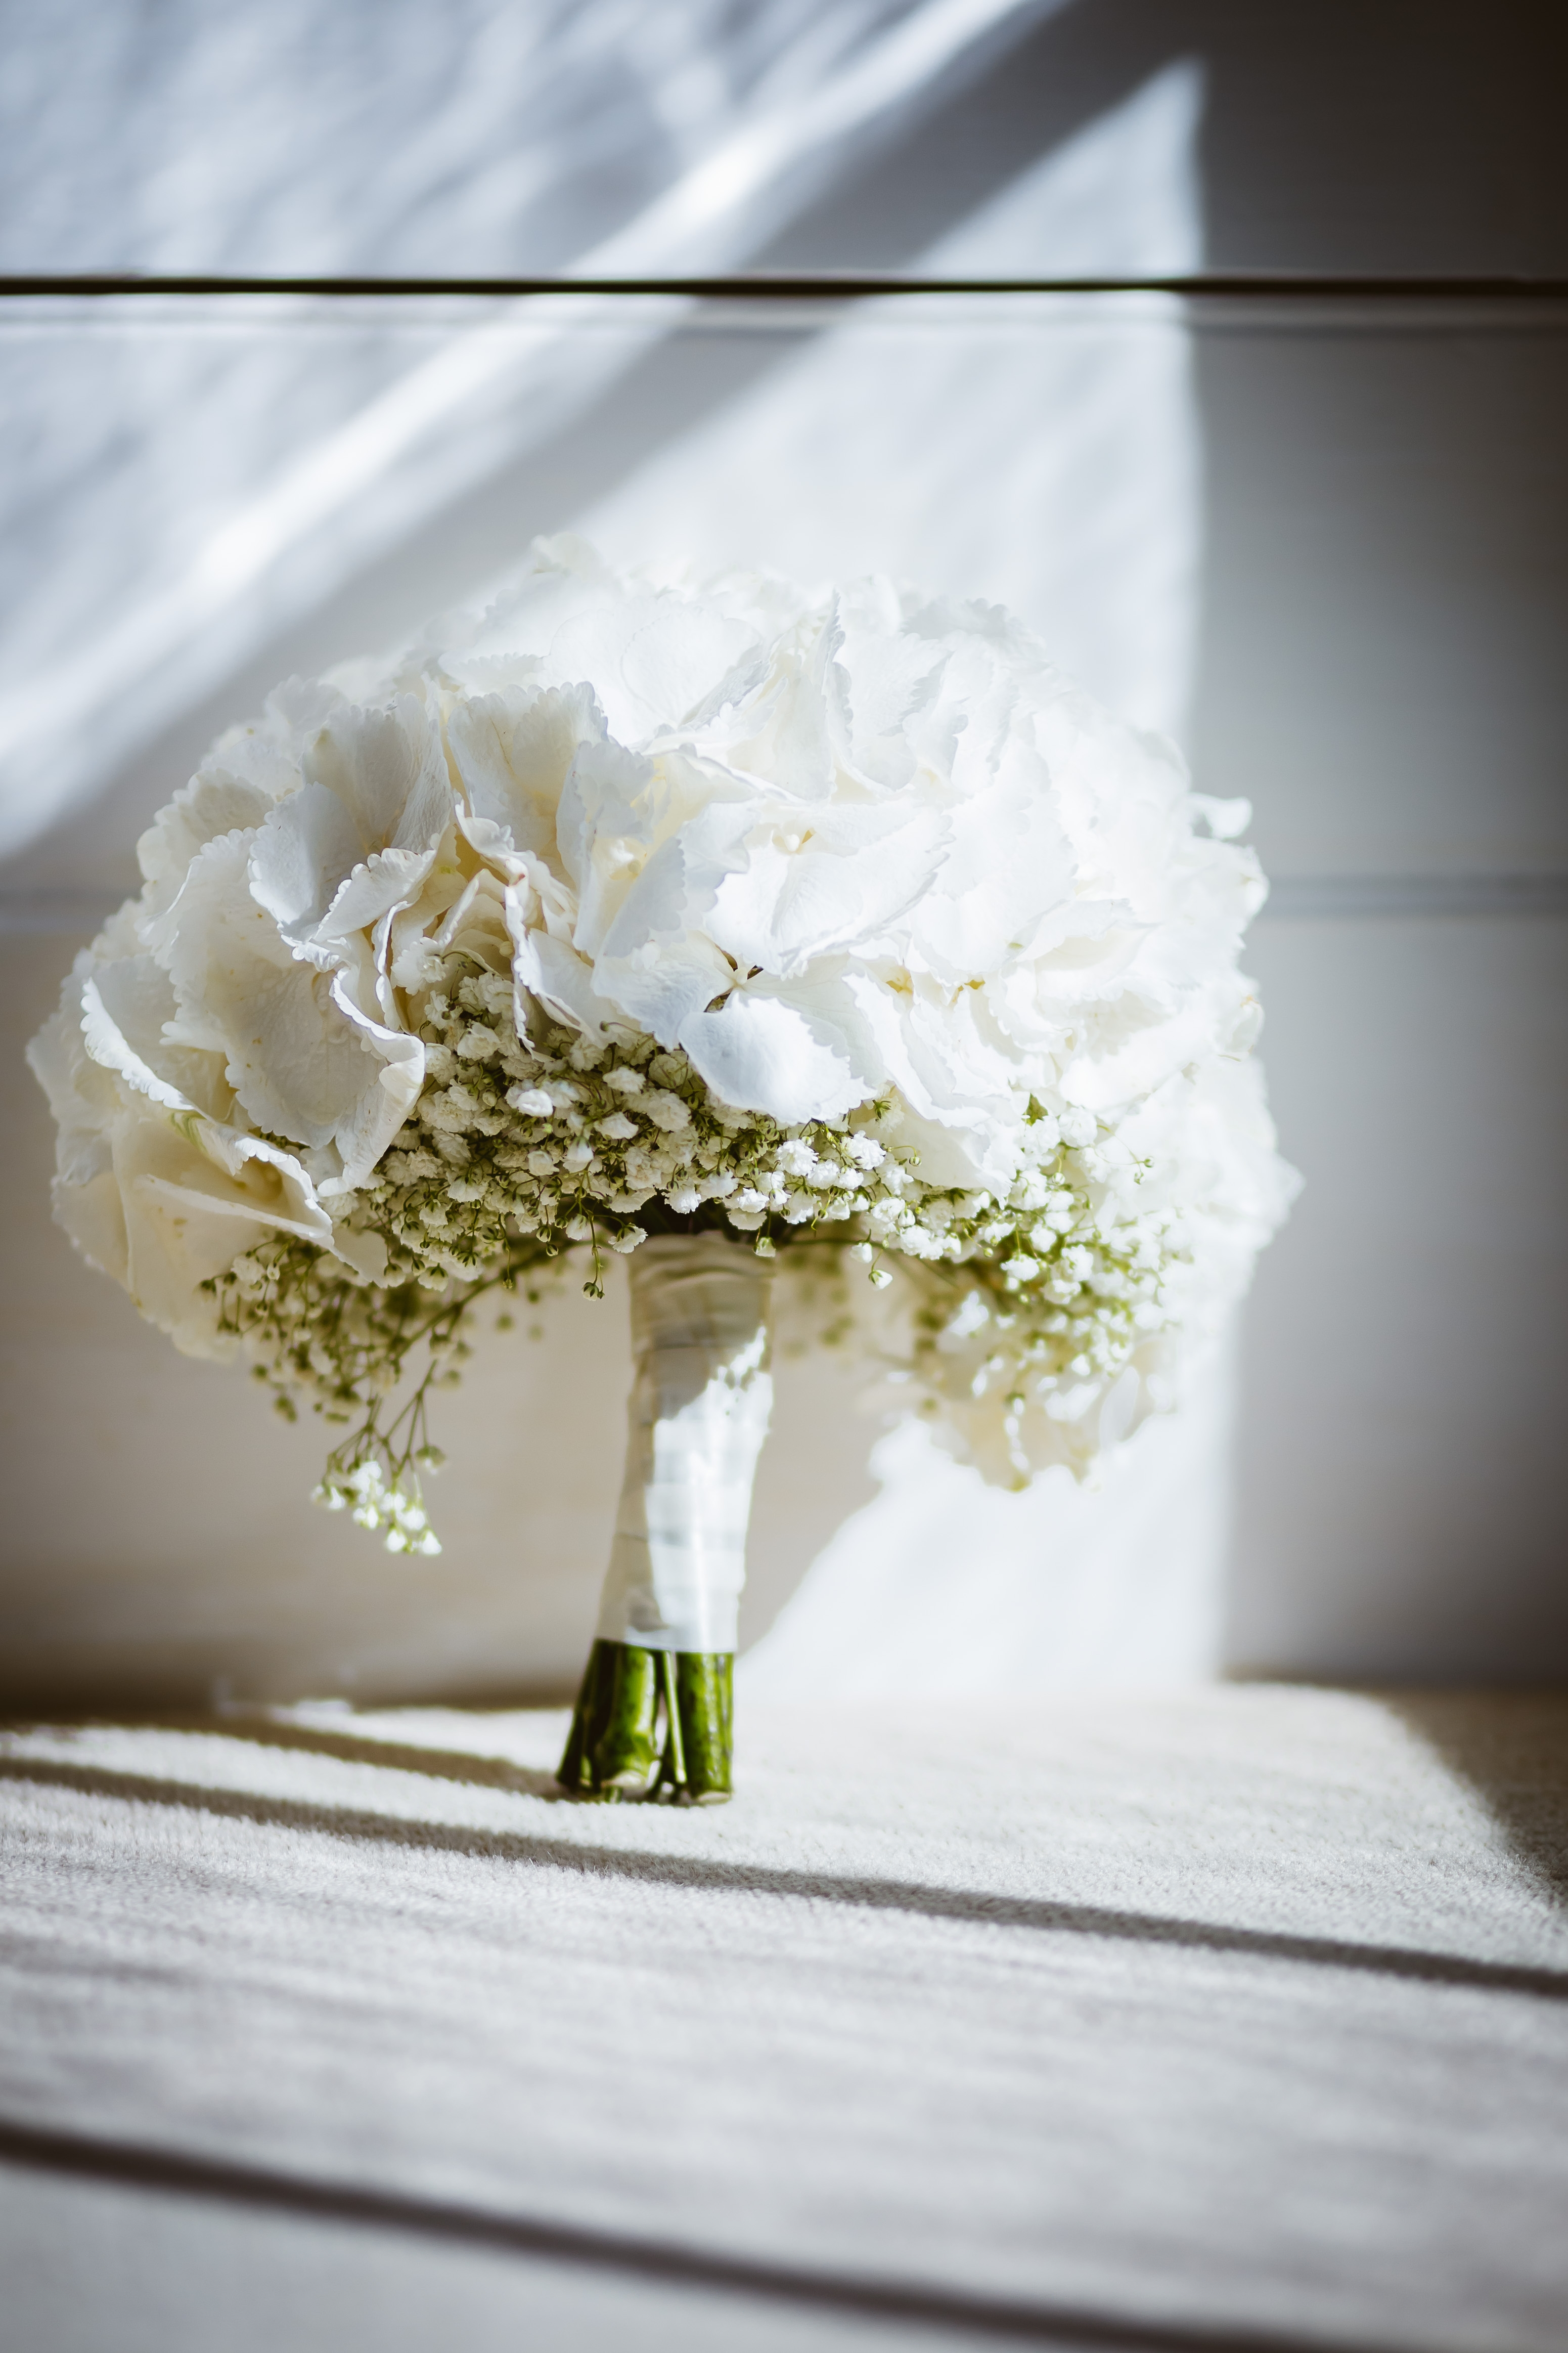 Lemon and White Wedding – Bridal Flowers Direct